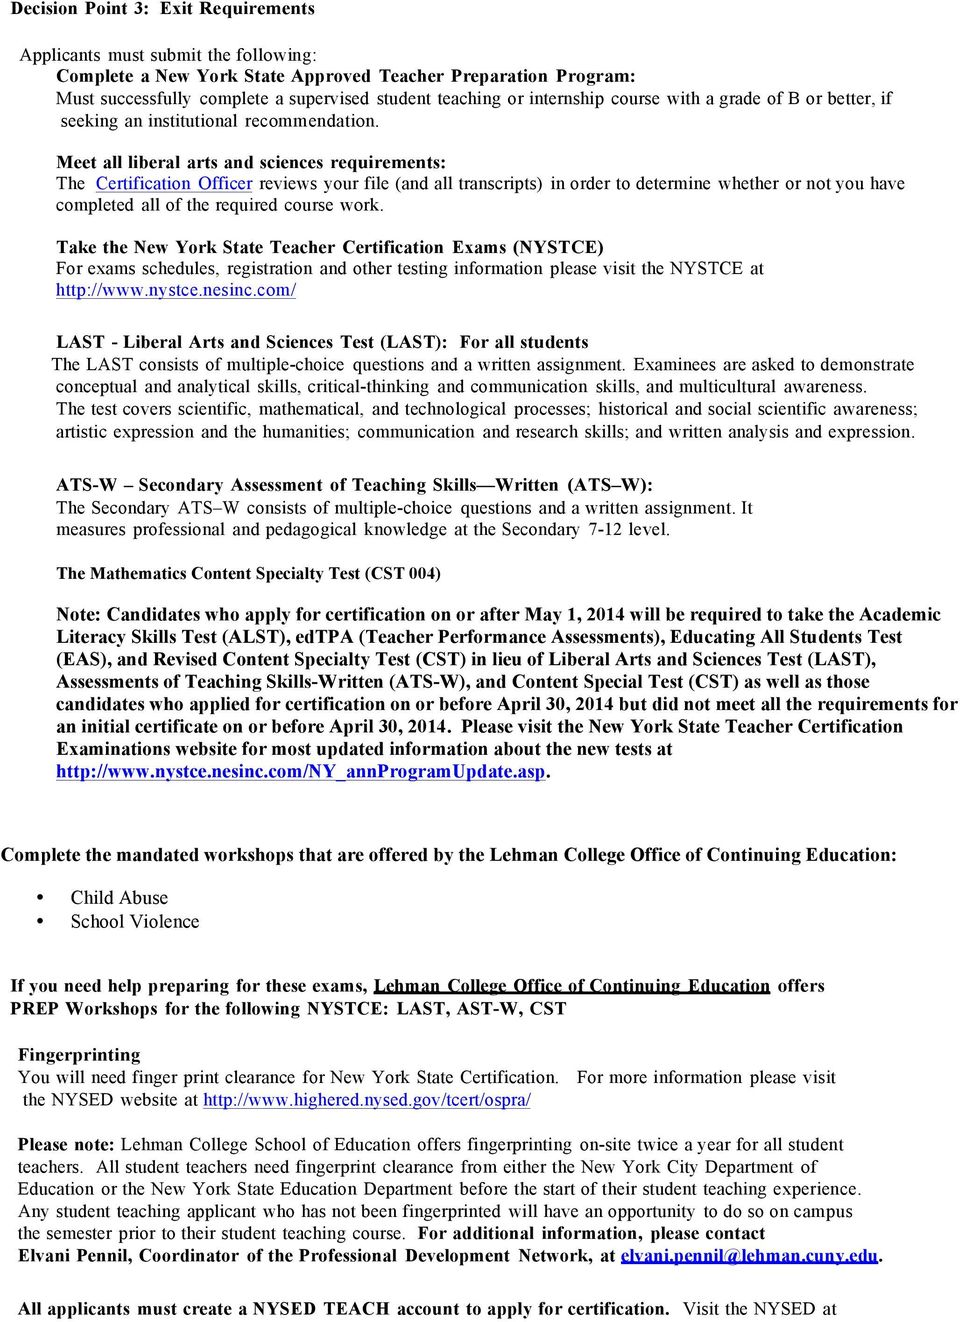 Lehman College School Of Education Advising Worksheet Program